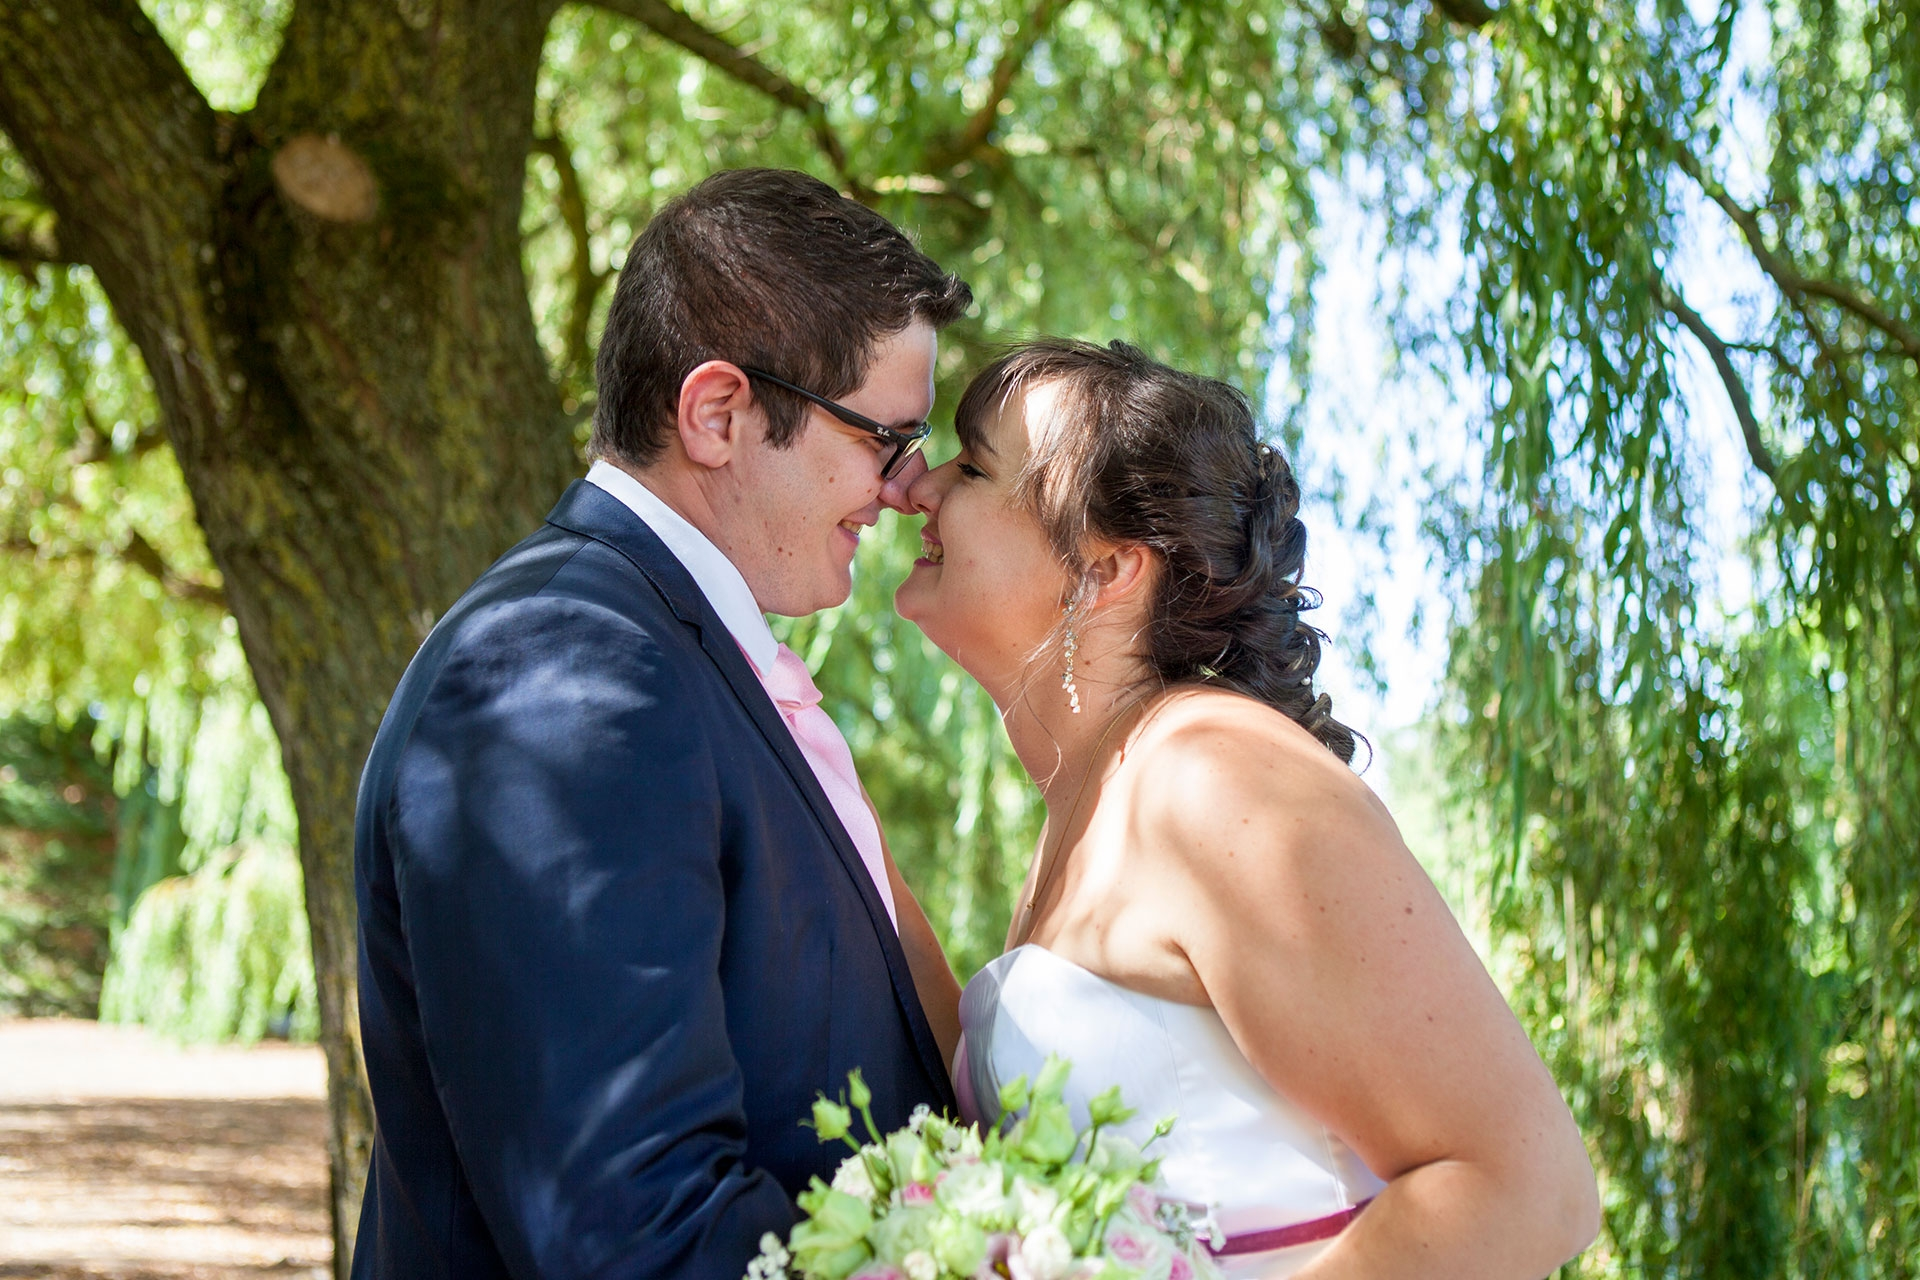 particuliers-evenements-mariages-oui-france&philippe-27